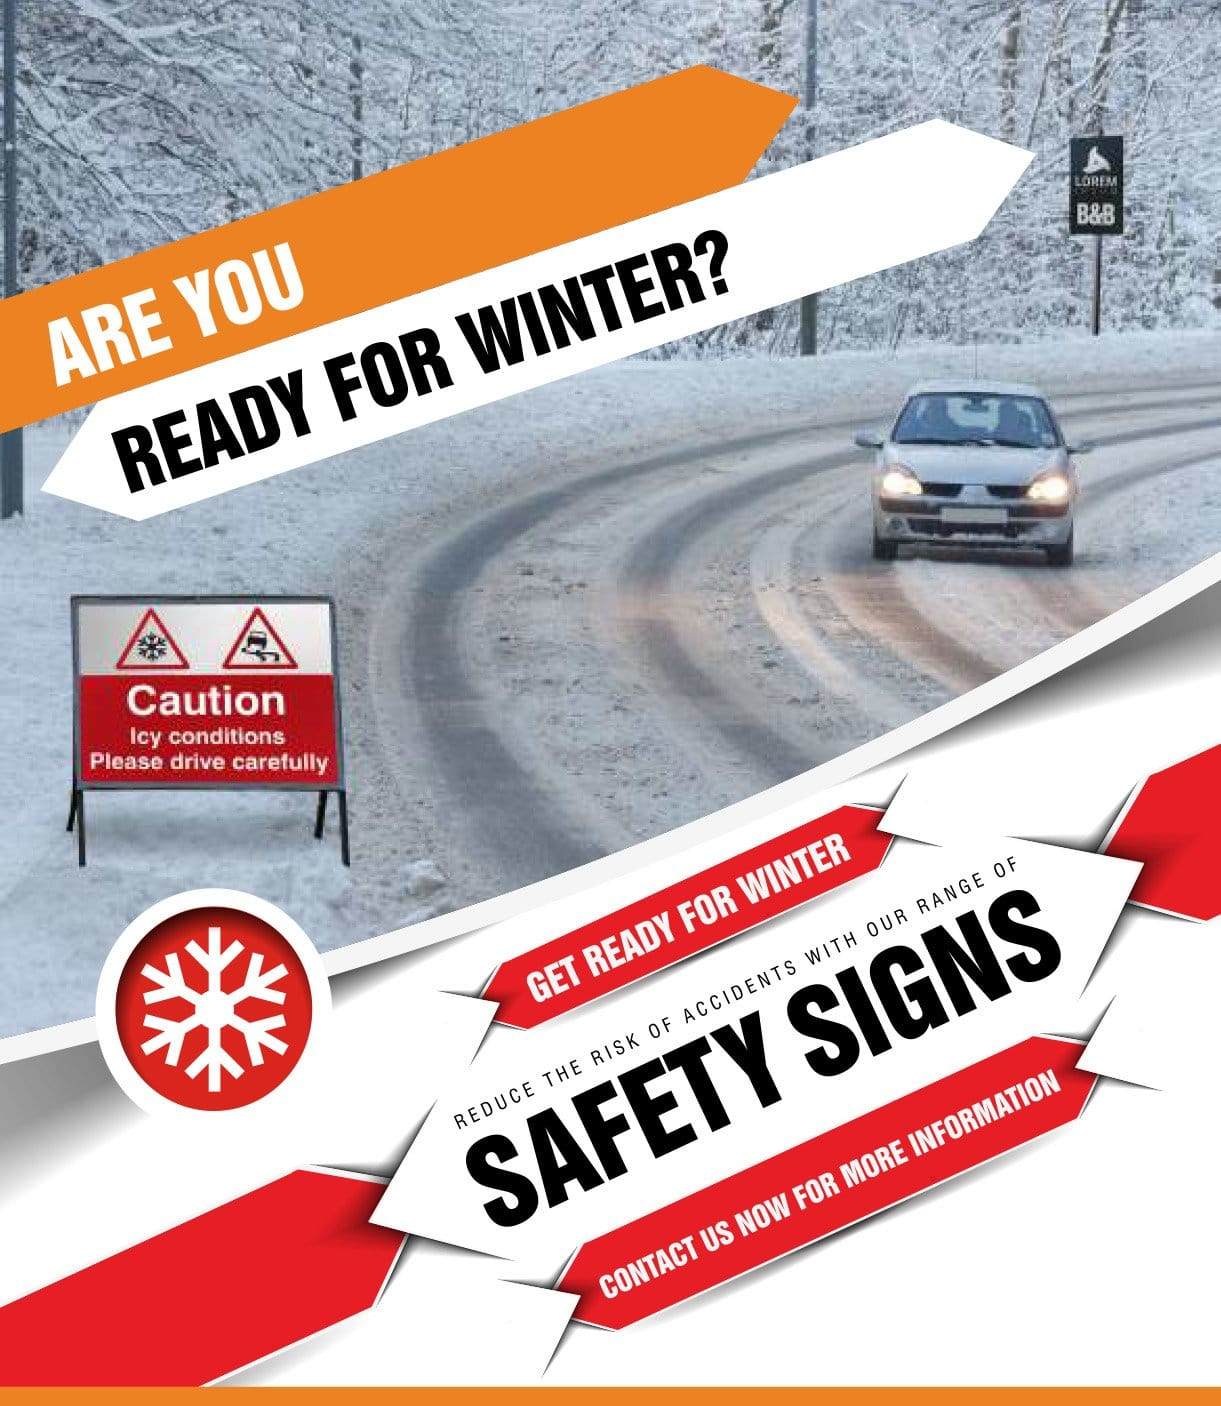 Safetynet Winter Safety Signs